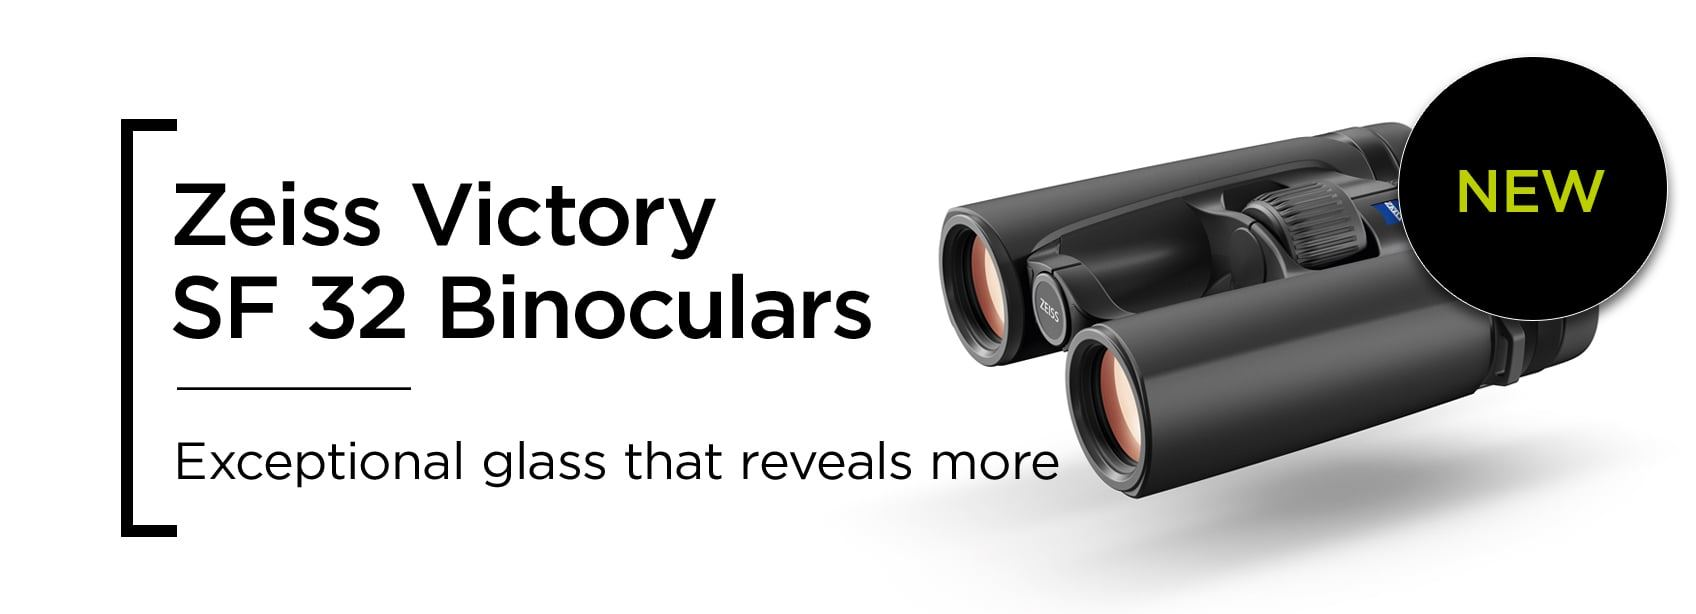 New Zeiss Victory SF 32 Binoculars - Order today!